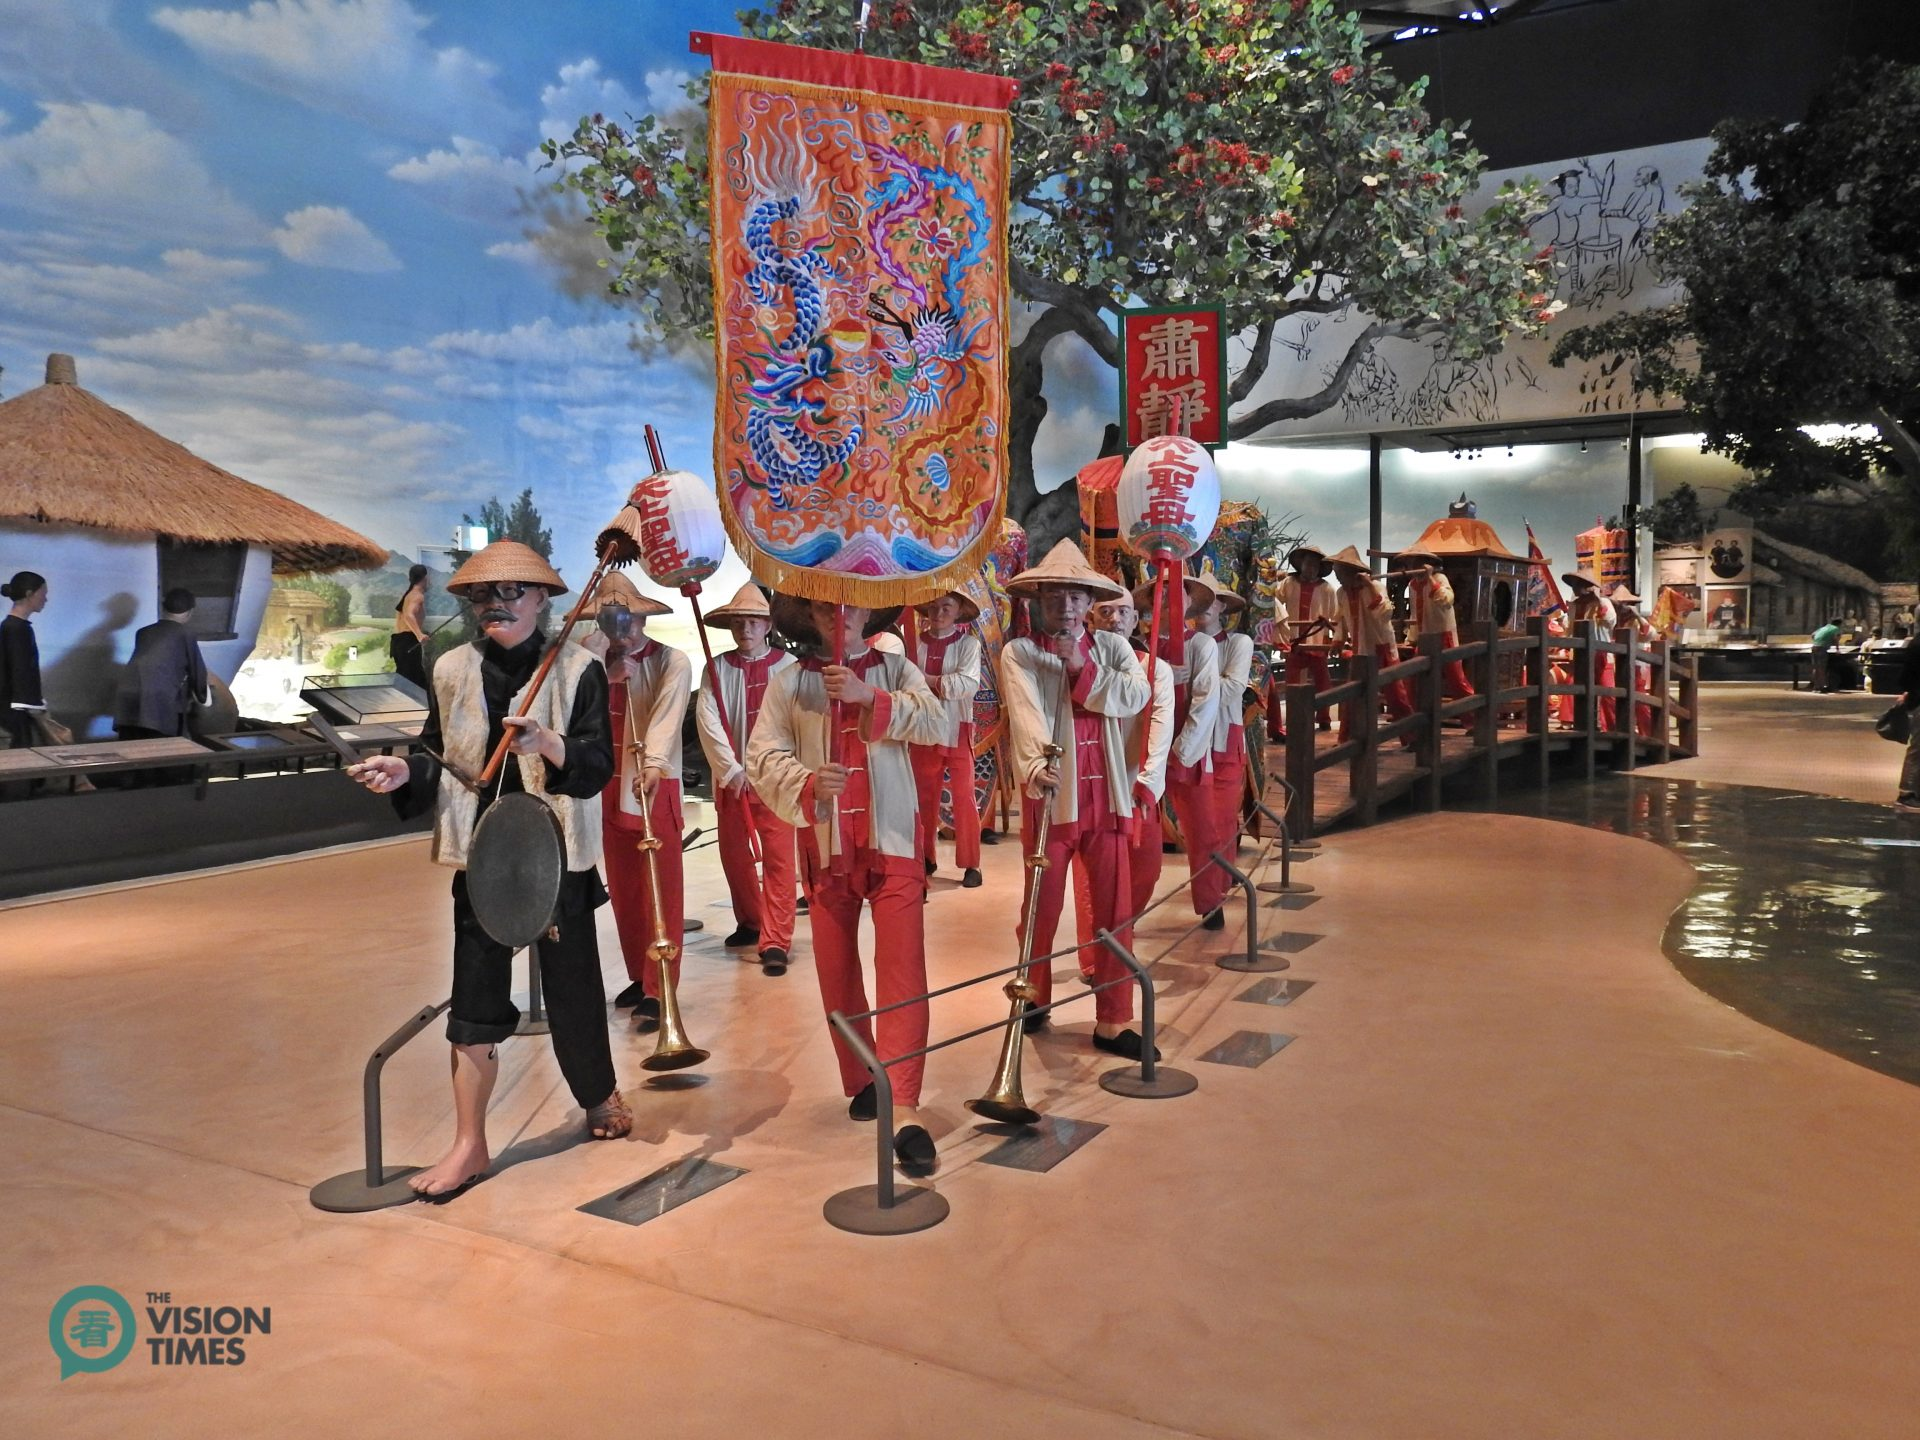 The life-sized objects depicting Taiwan's traditional religious parade at the permanent exhibition gallery. (Image: Billy Shyu / Vision Times)